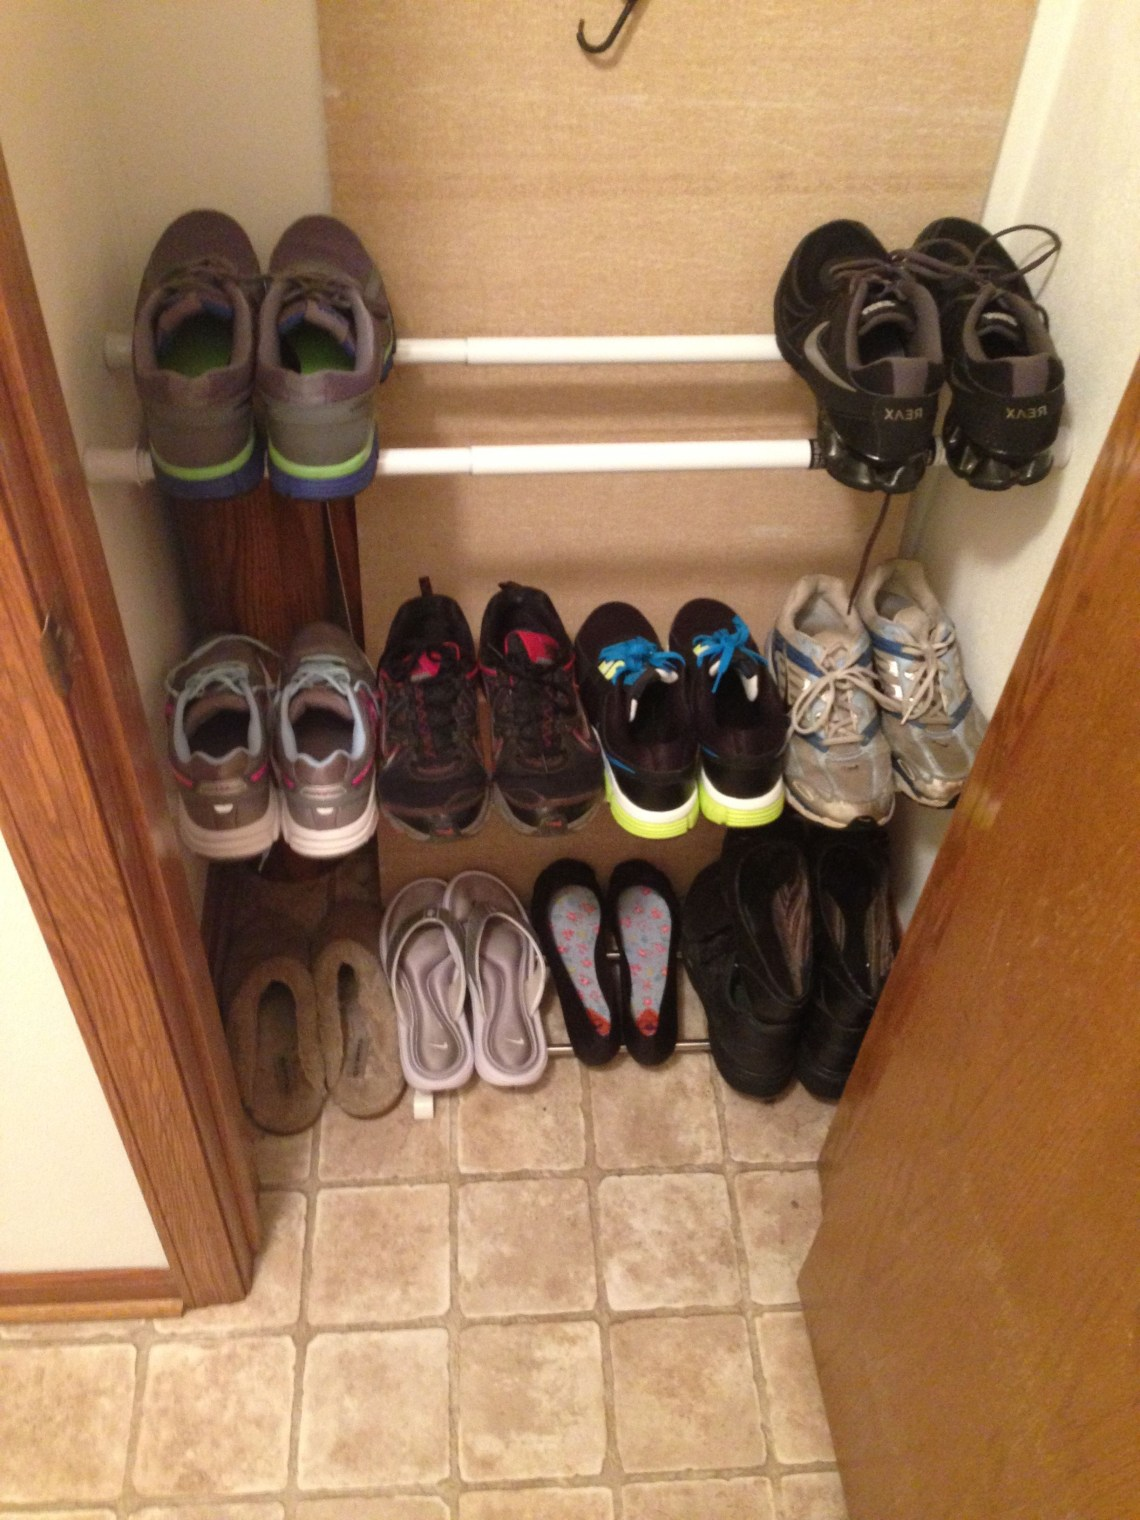 Tension Rods As A Shoe Rack Works Amazing In 2019